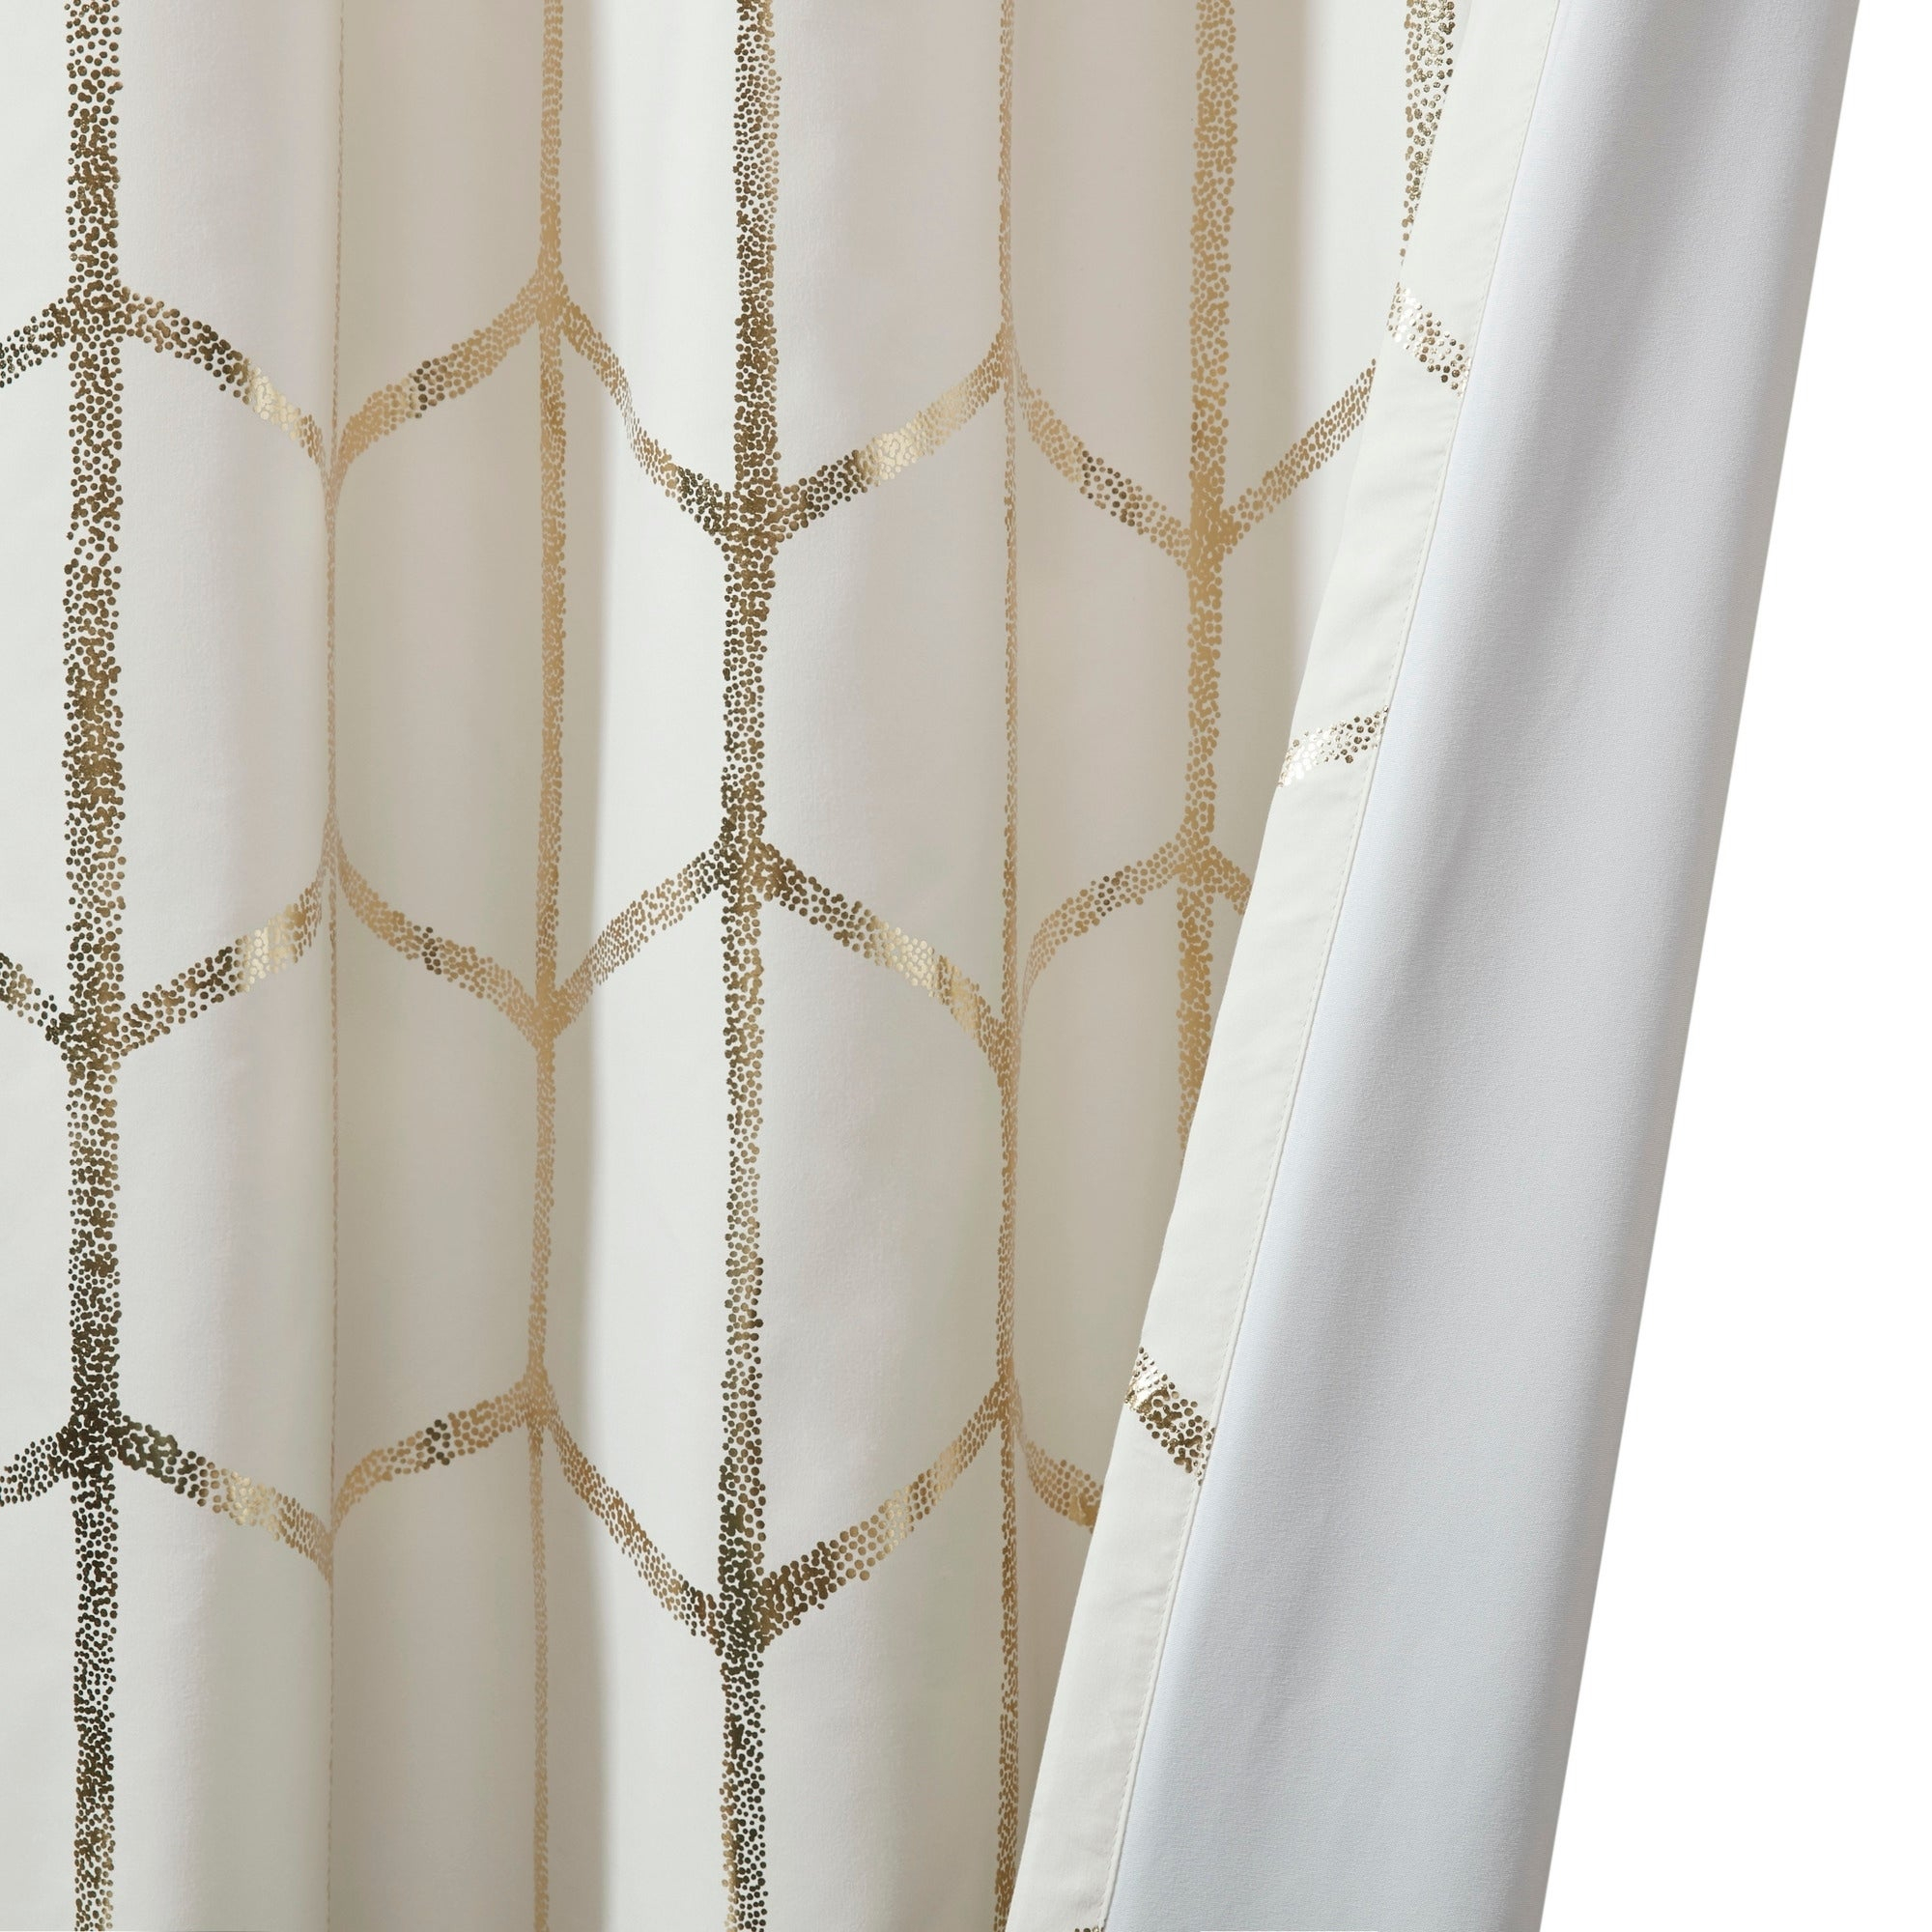 """Intelligent Design Khloe Total Blackout Metallic Print Grommet Top Curtain Panel 84"""" In Blush/ Gold (as Is Item) Intended For Total Blackout Metallic Print Grommet Top Curtain Panels (View 20 of 36)"""